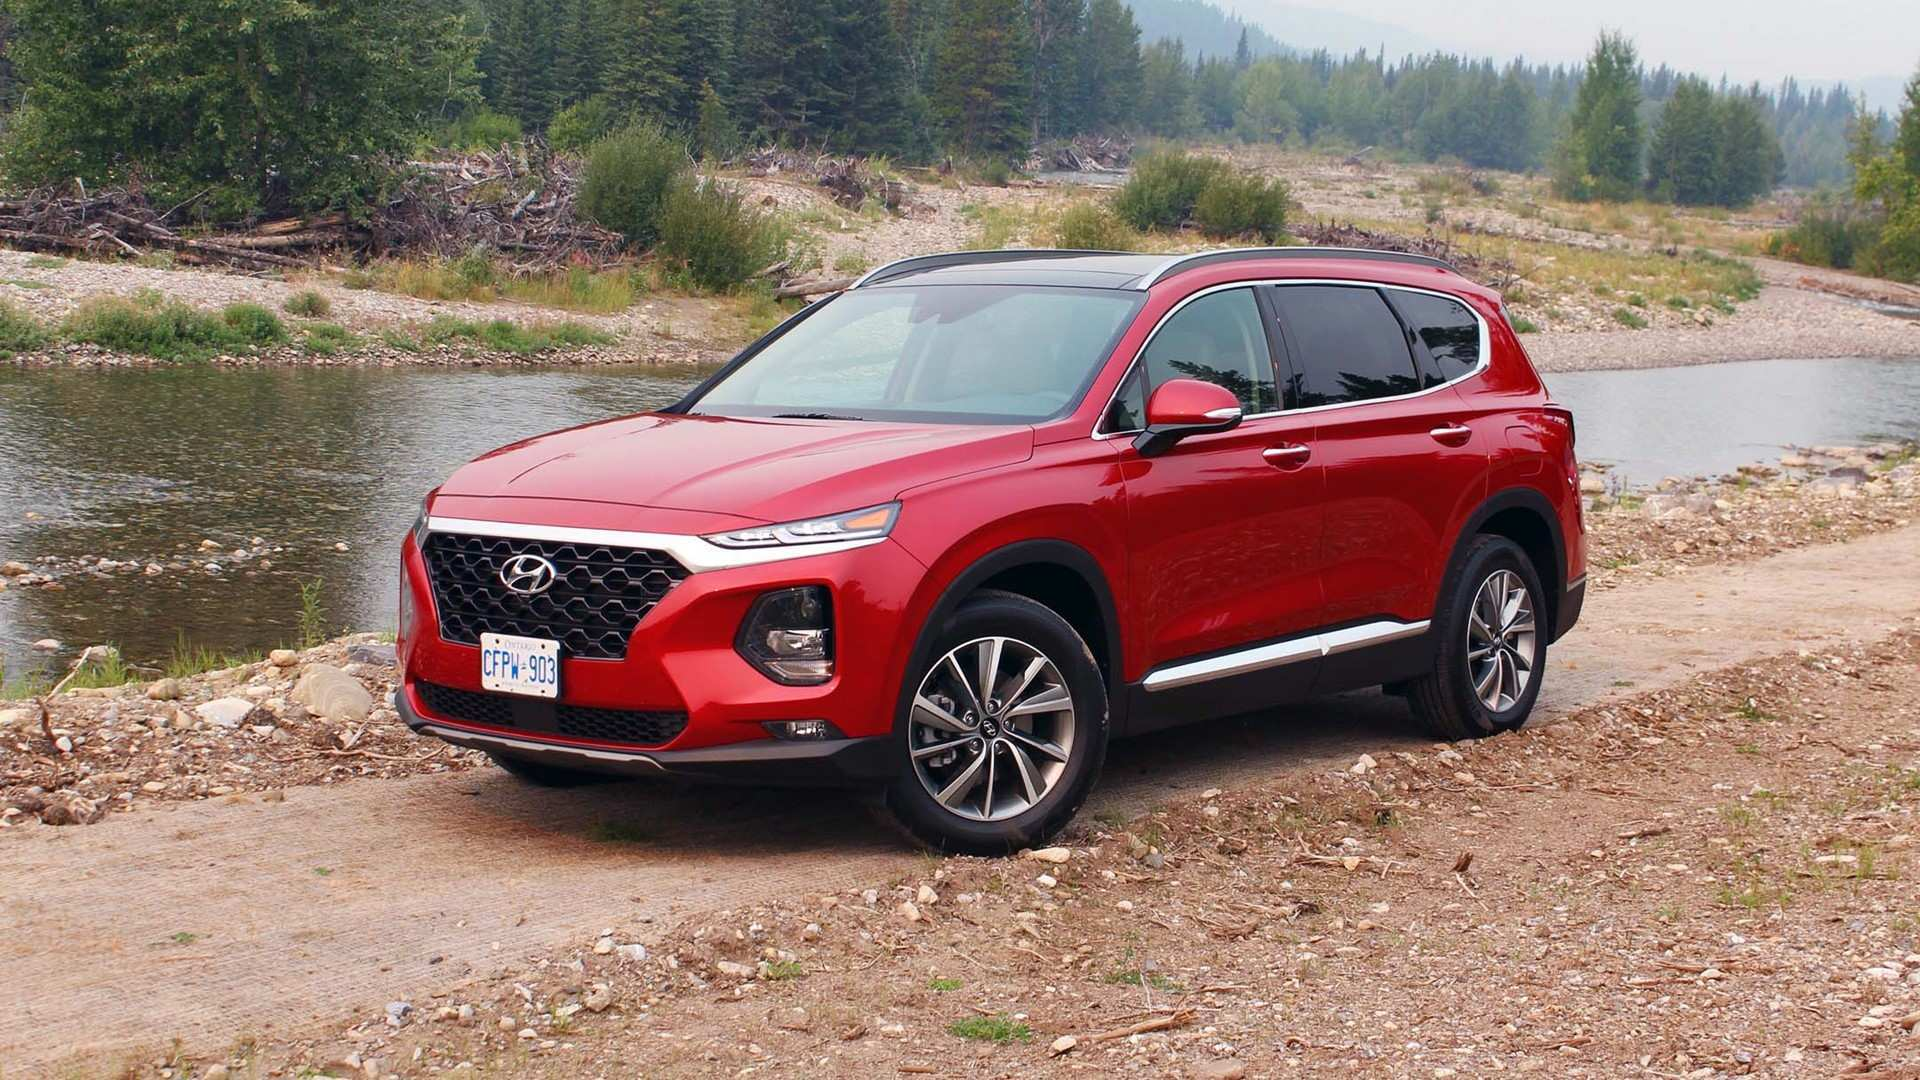 78 The 2019 Hyundai Santa Fe Test Drive Images for 2019 Hyundai Santa Fe Test Drive